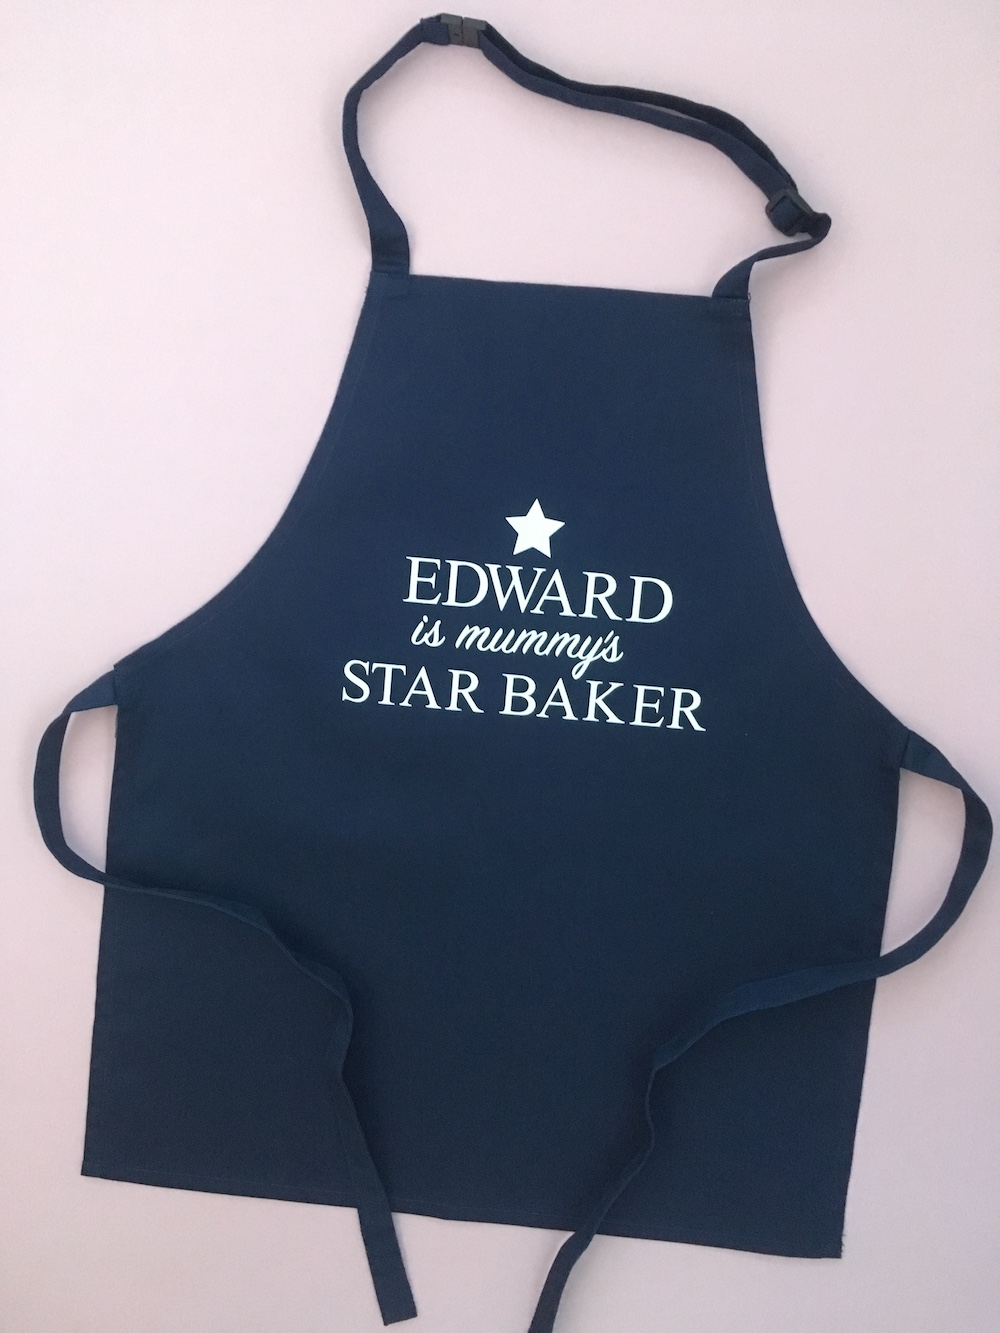 Star Baker Childrens Apron 6 – 10 YEARS